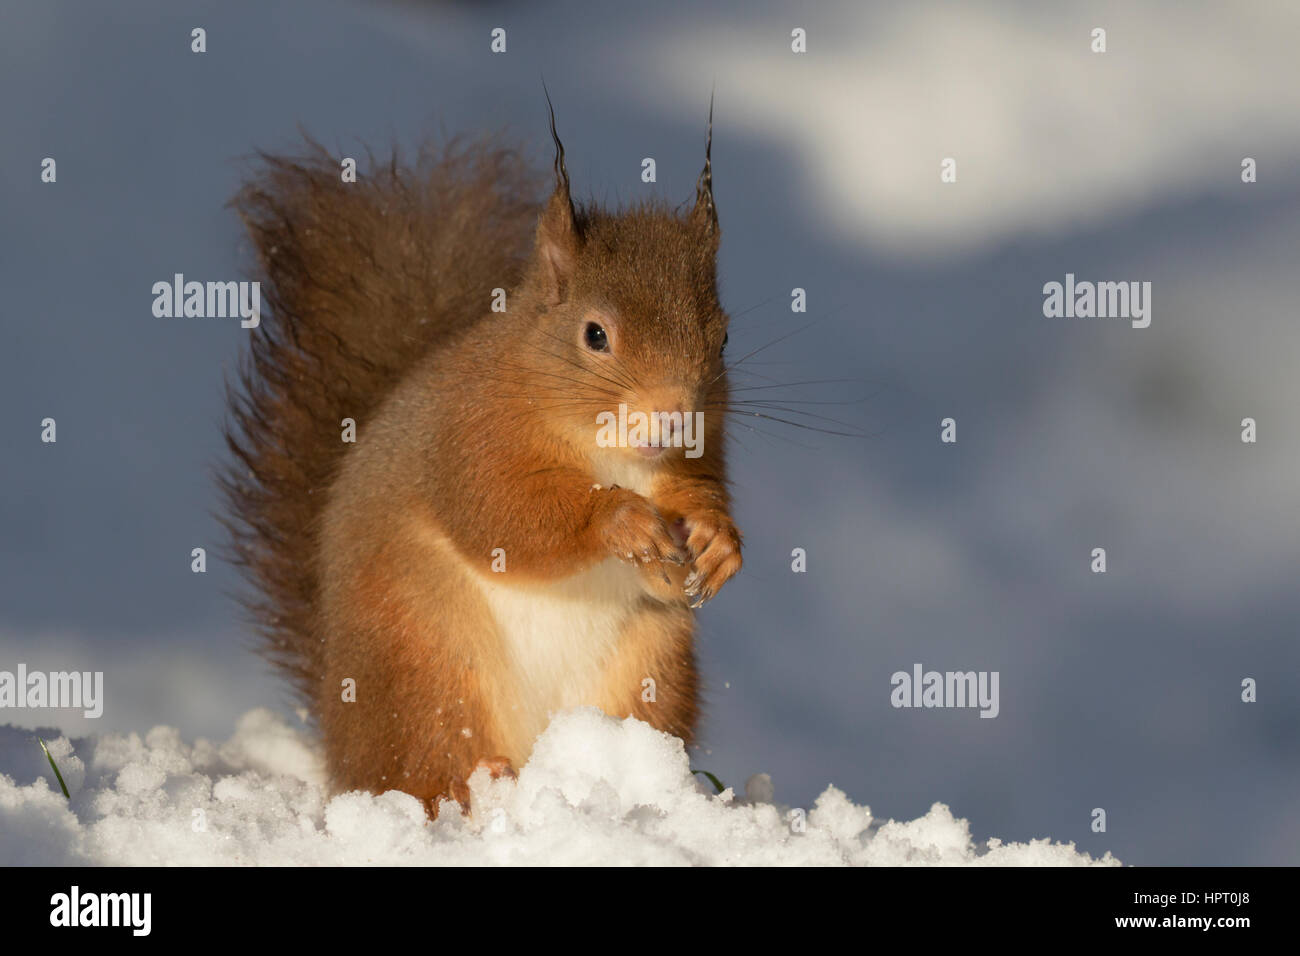 Red Squirrel (Sciurus vulgaris) in the snow, Scottish Highlands, UK - Stock Image